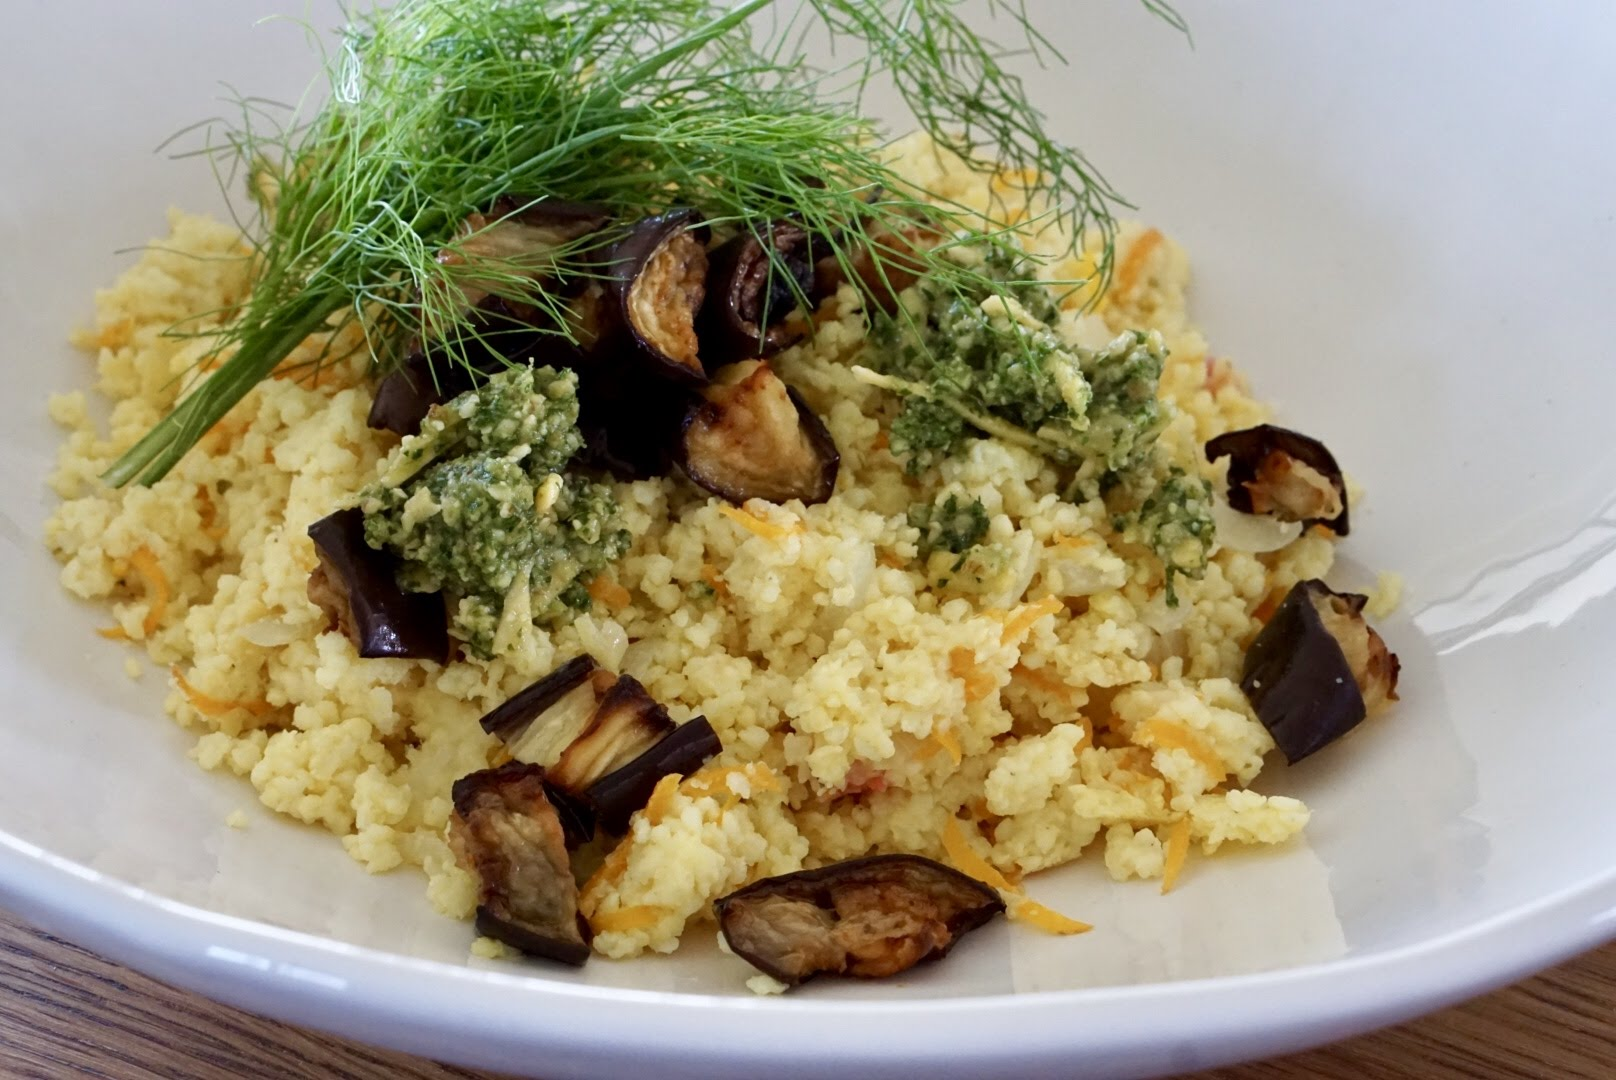 Millet risotto